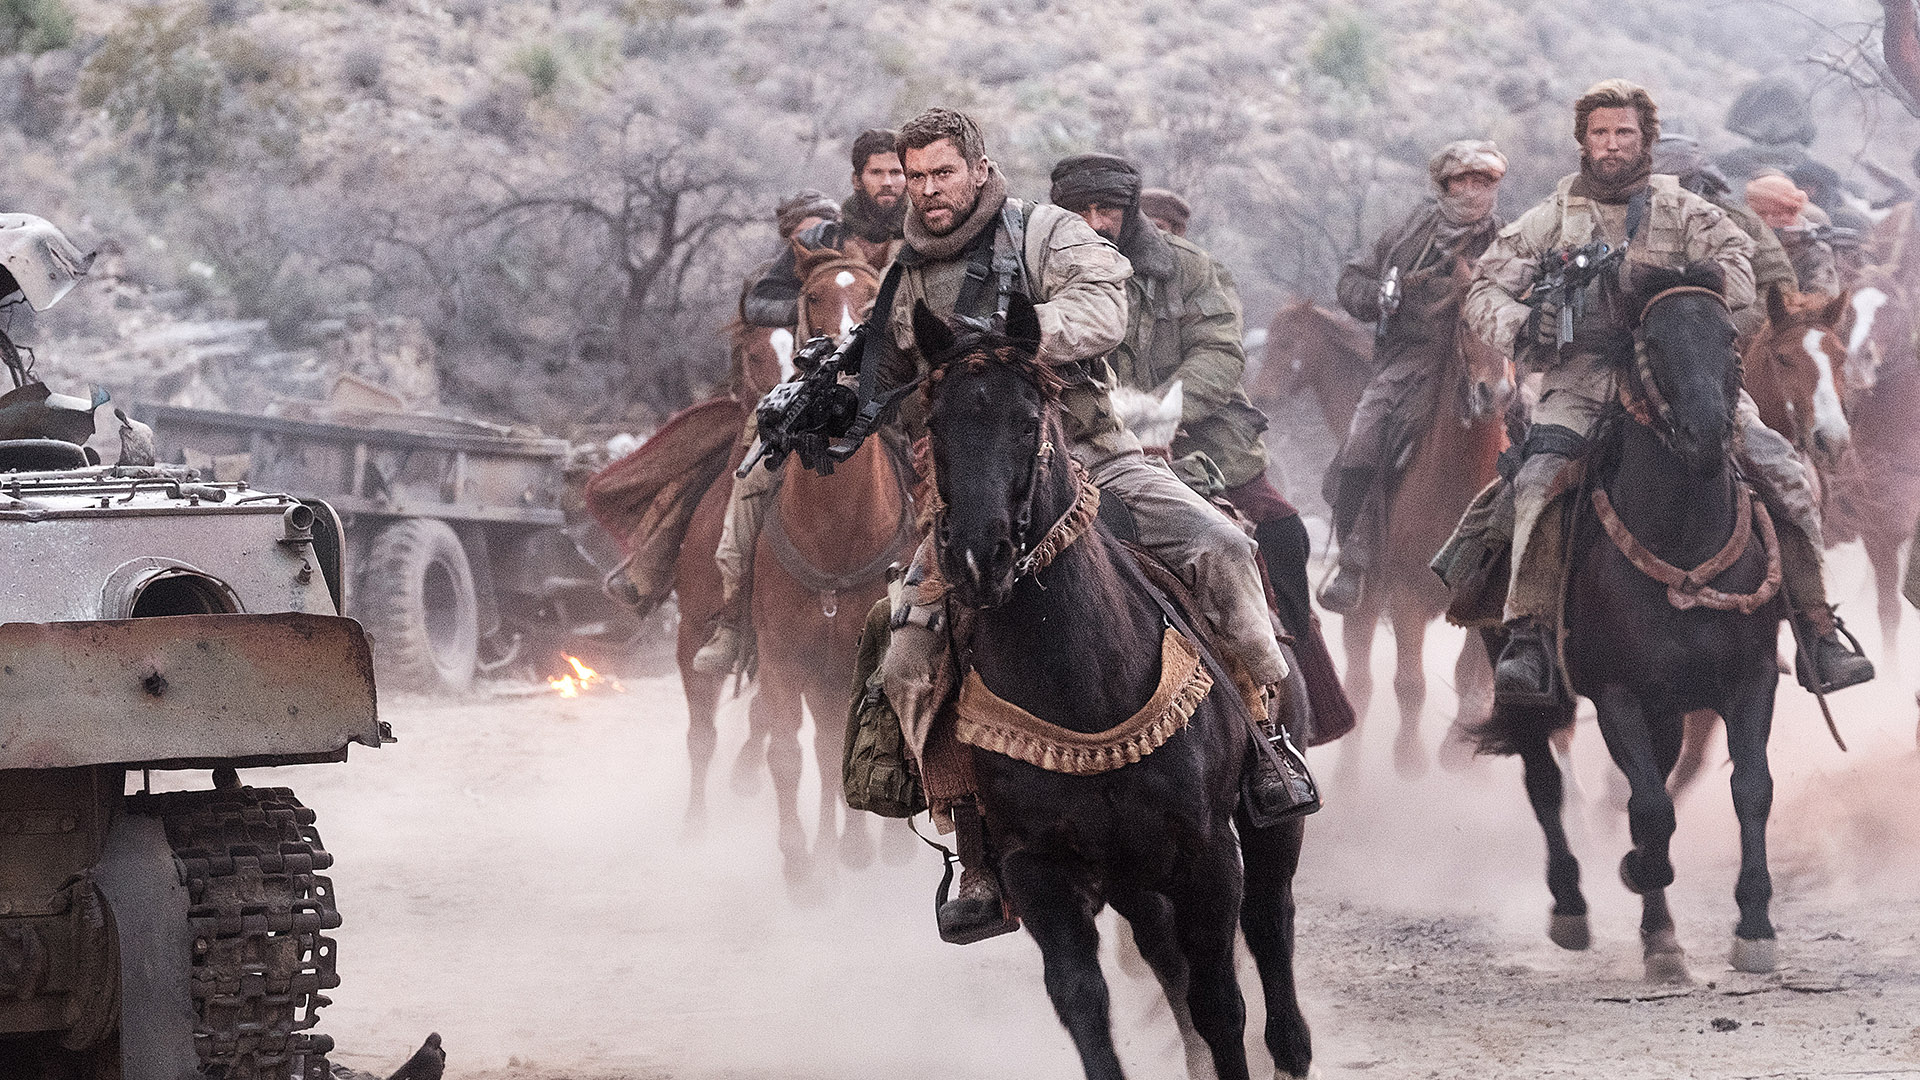 Movie Watch: Amarillo film options for Jan. 18 to 25, including 'Den of Thieves,' '12 Strong,' 'Call Me By Your Name,' more